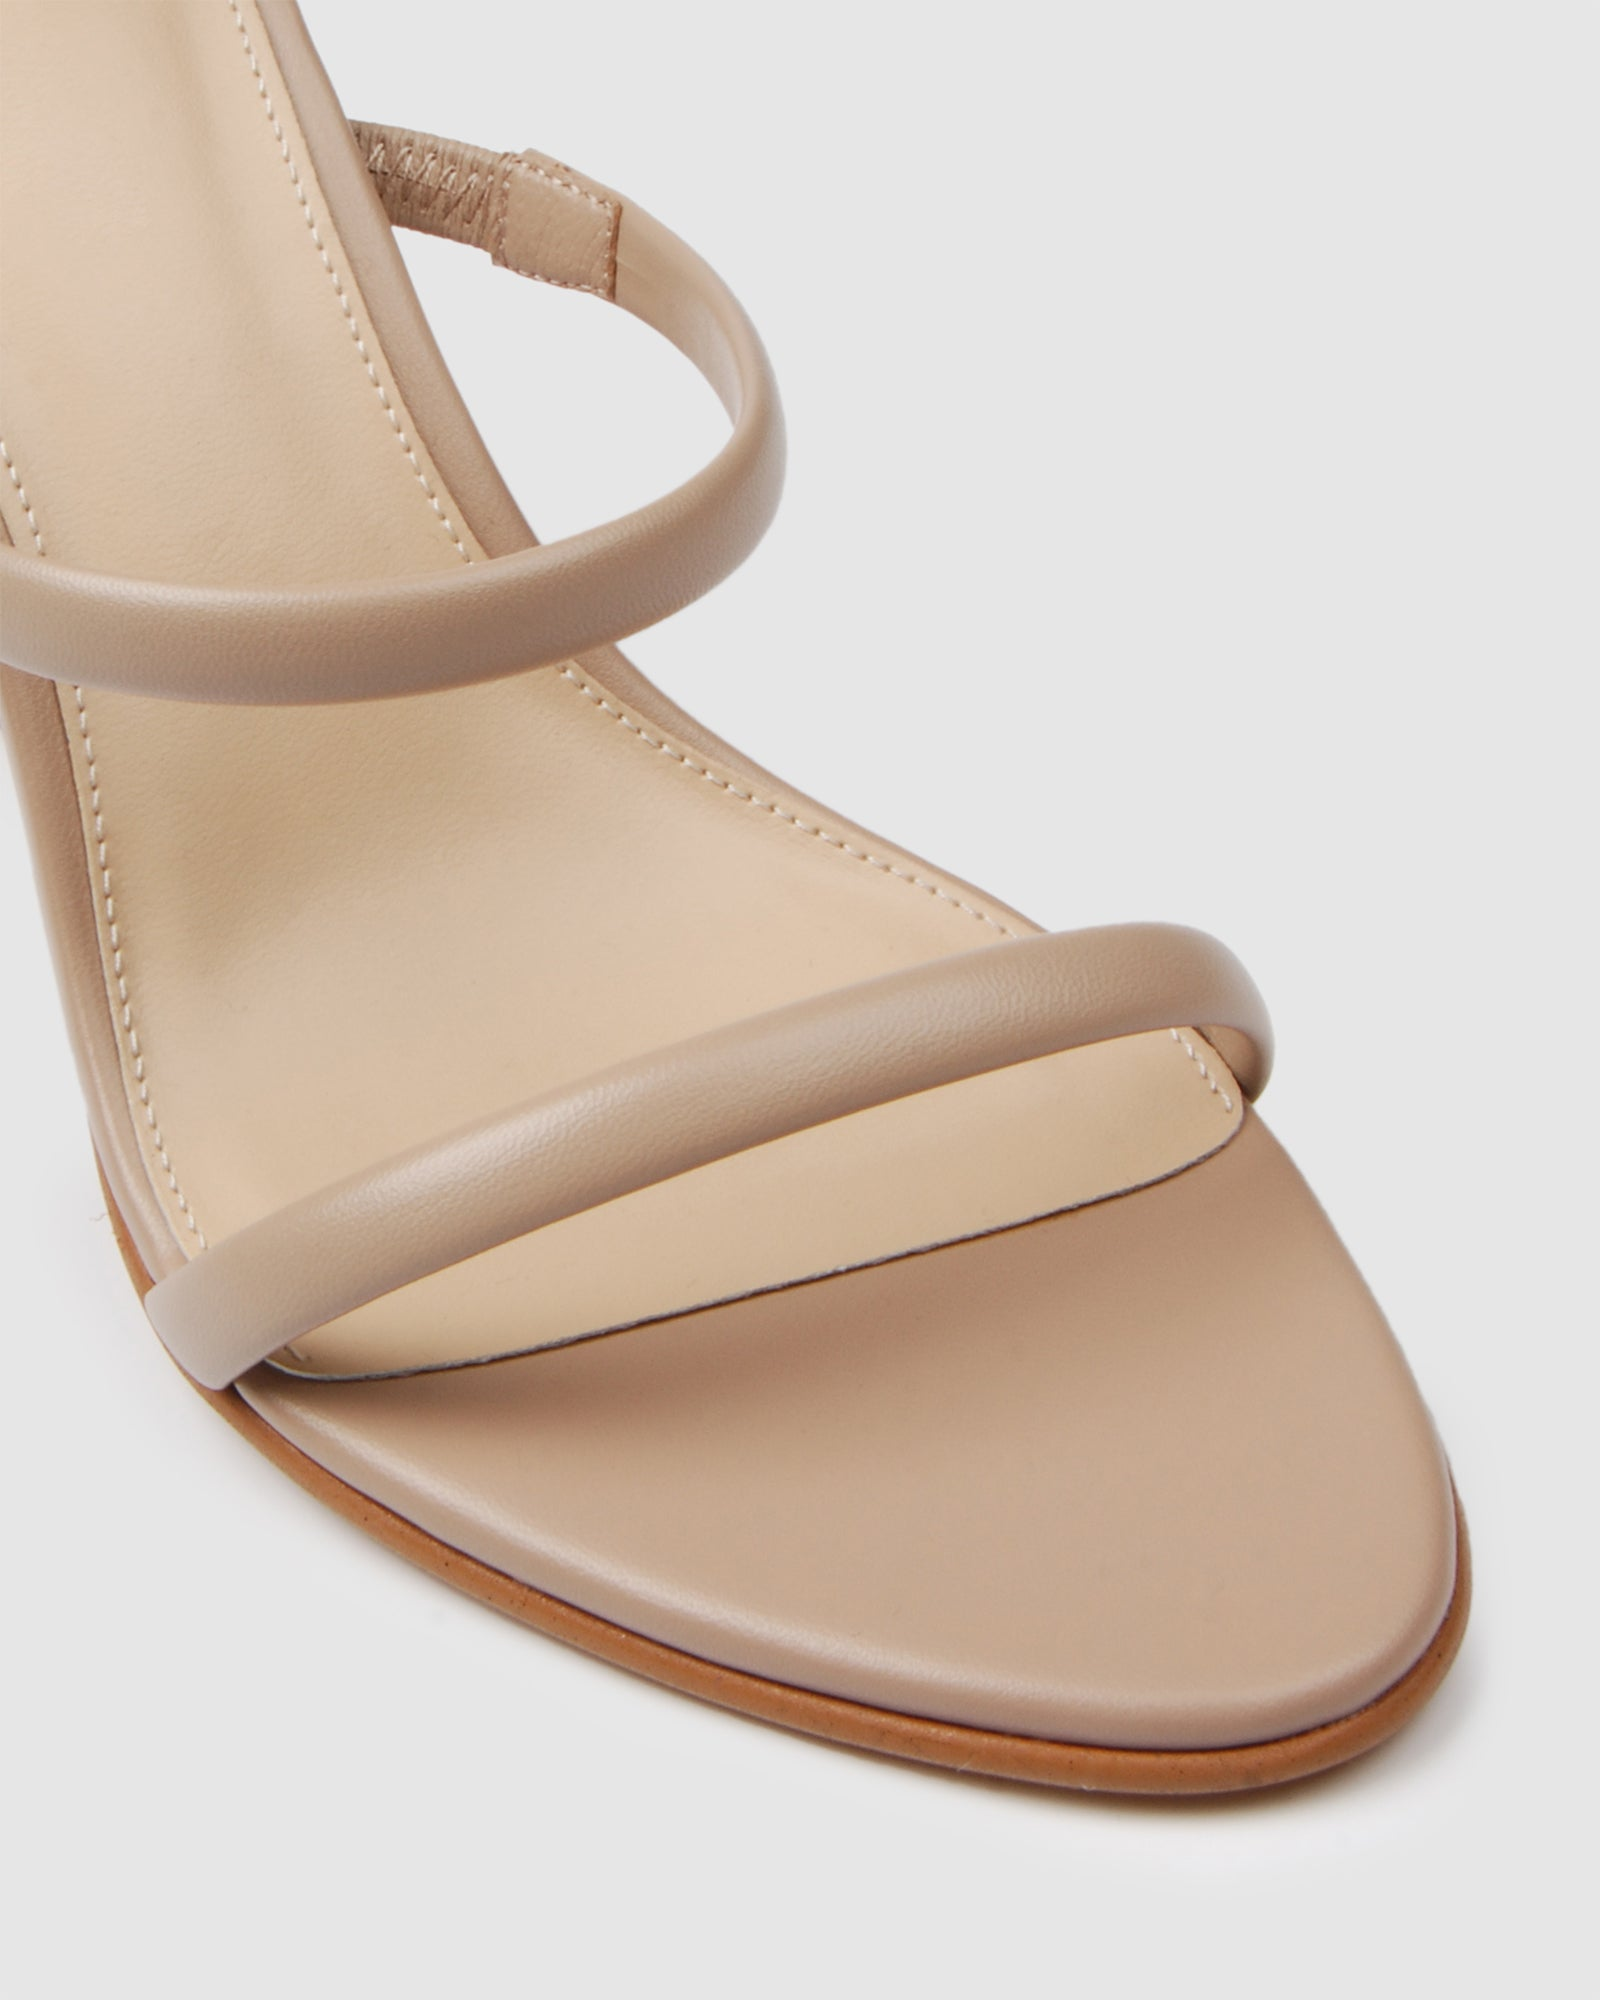 PHOENIX HIGH HEEL SANDALS BEIGE LEATHER